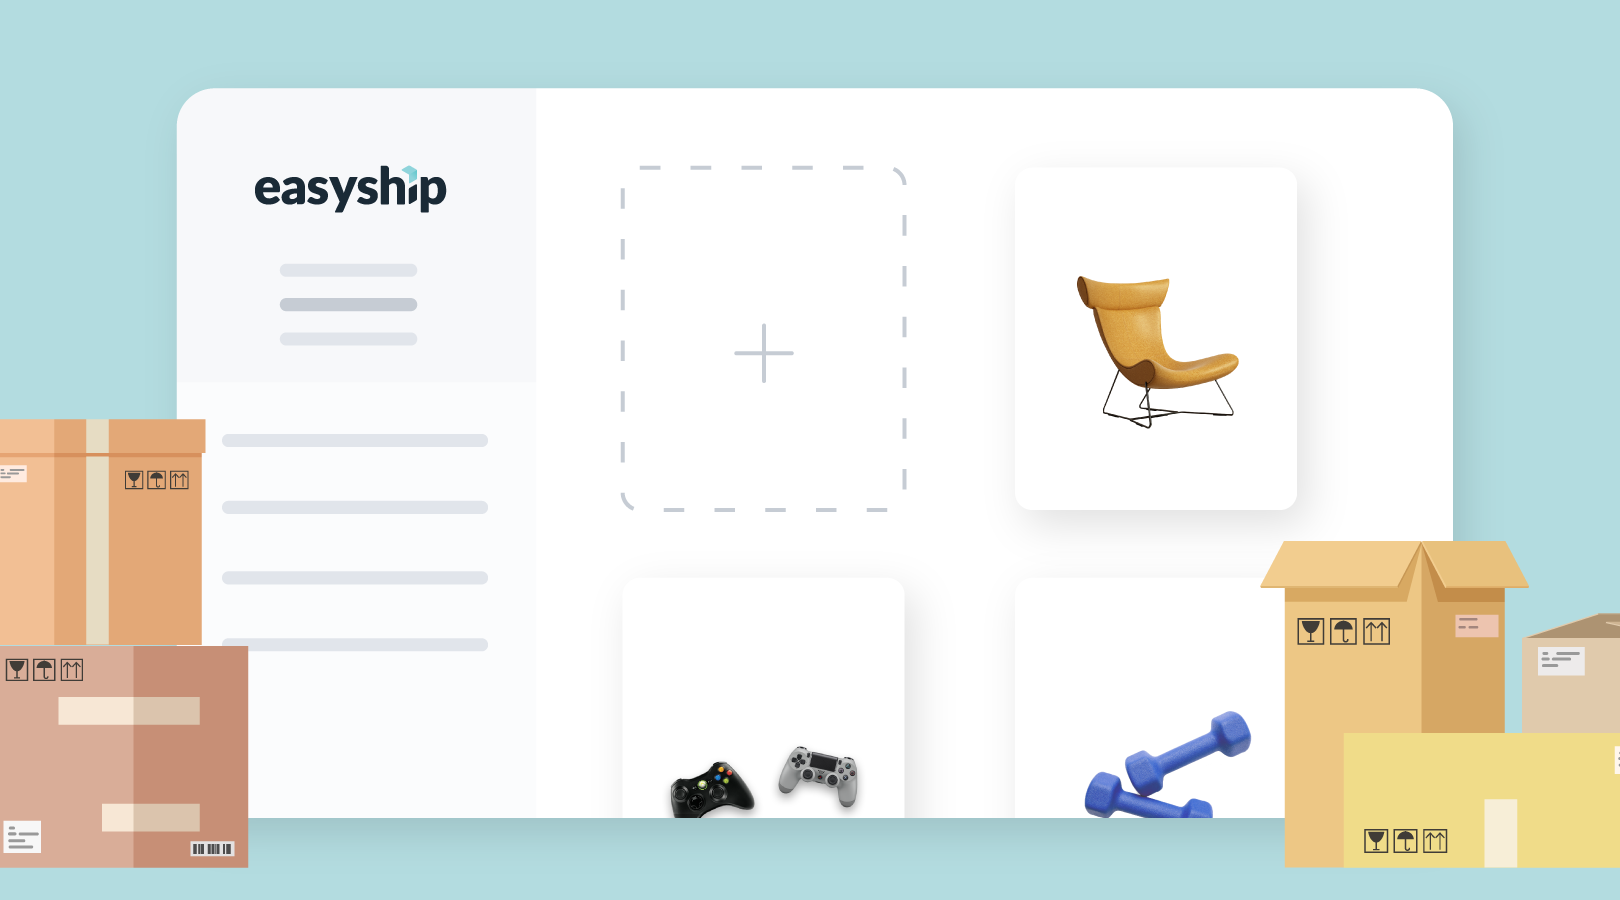 Easyship: Product Page